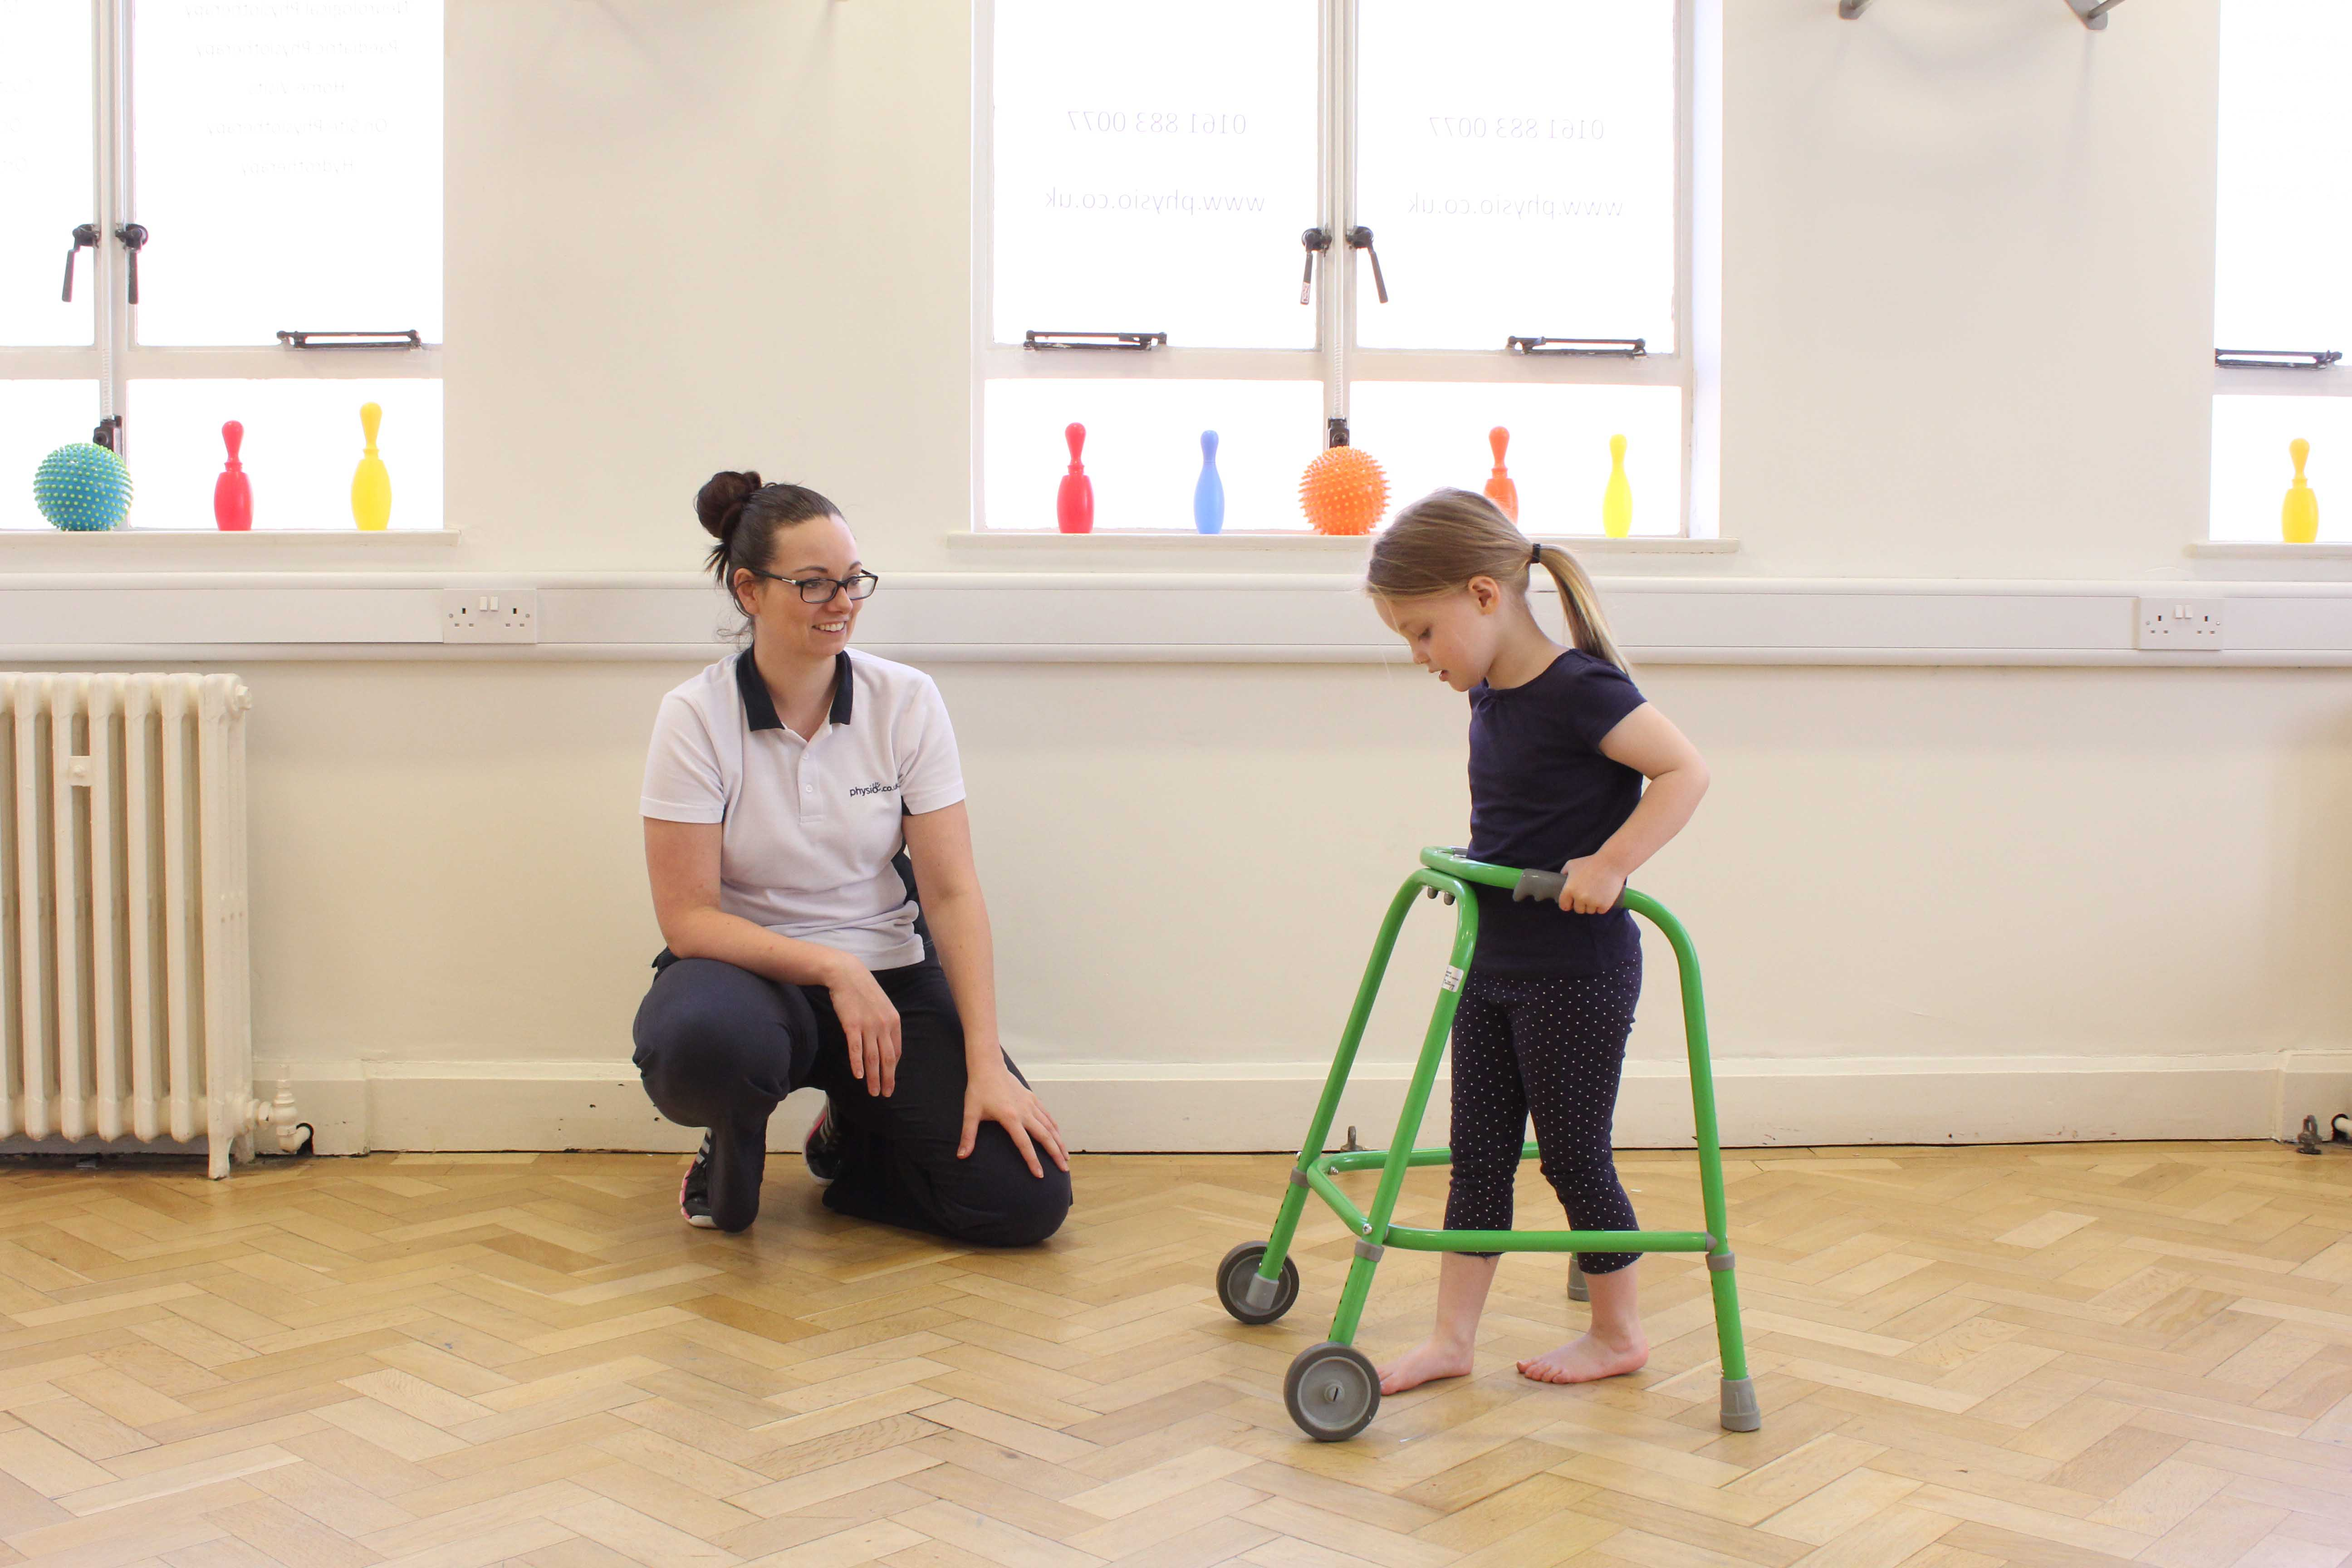 Mobilisation exercises using a wheeled frame under supervision of an experienced physiotherapist